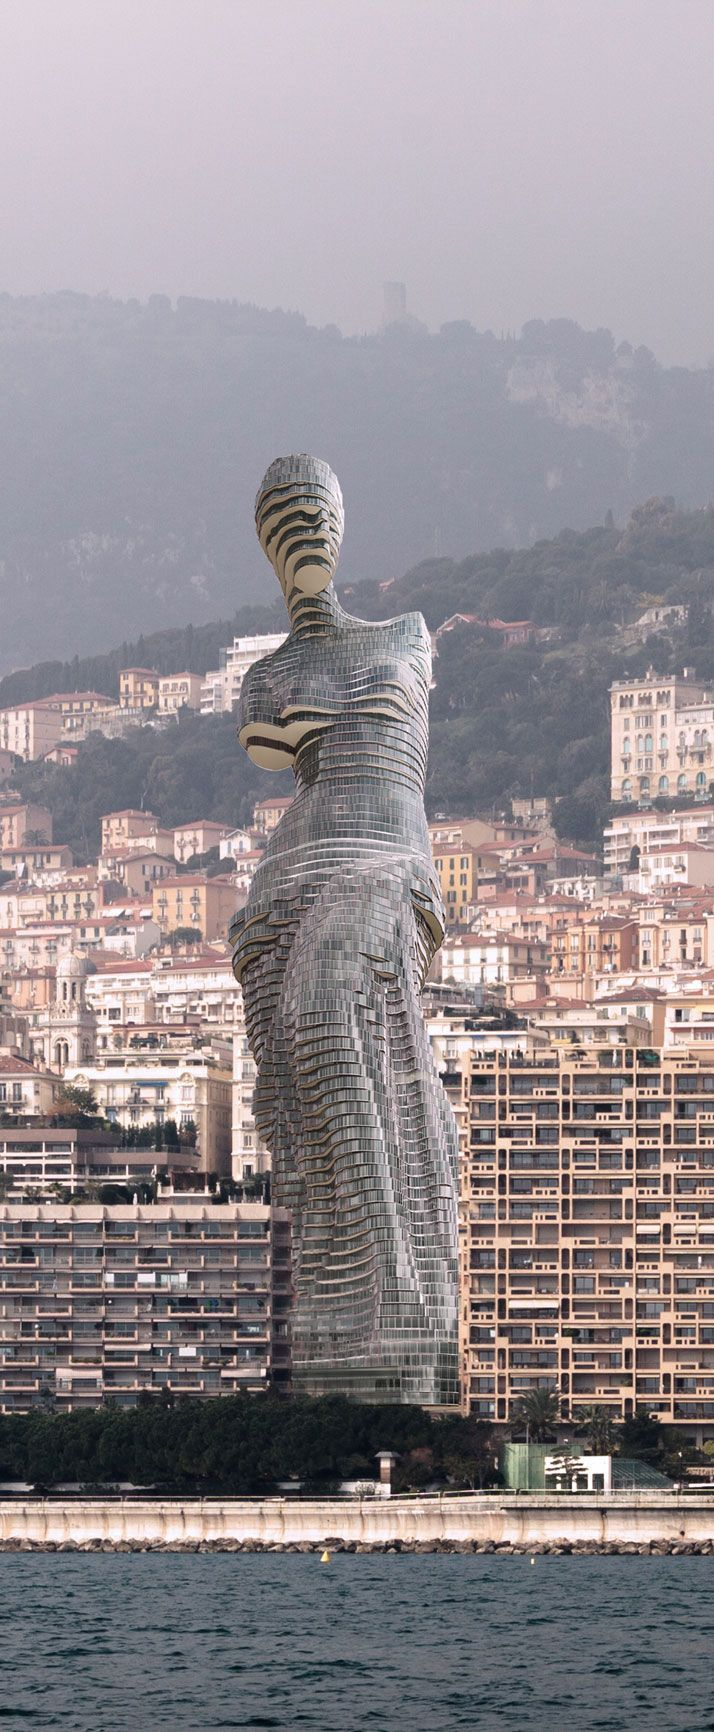 The Aphrodite of Mil charisma design. The crazy Russian tycoon skyscraper designed in the shape of Victory of Samothrace.